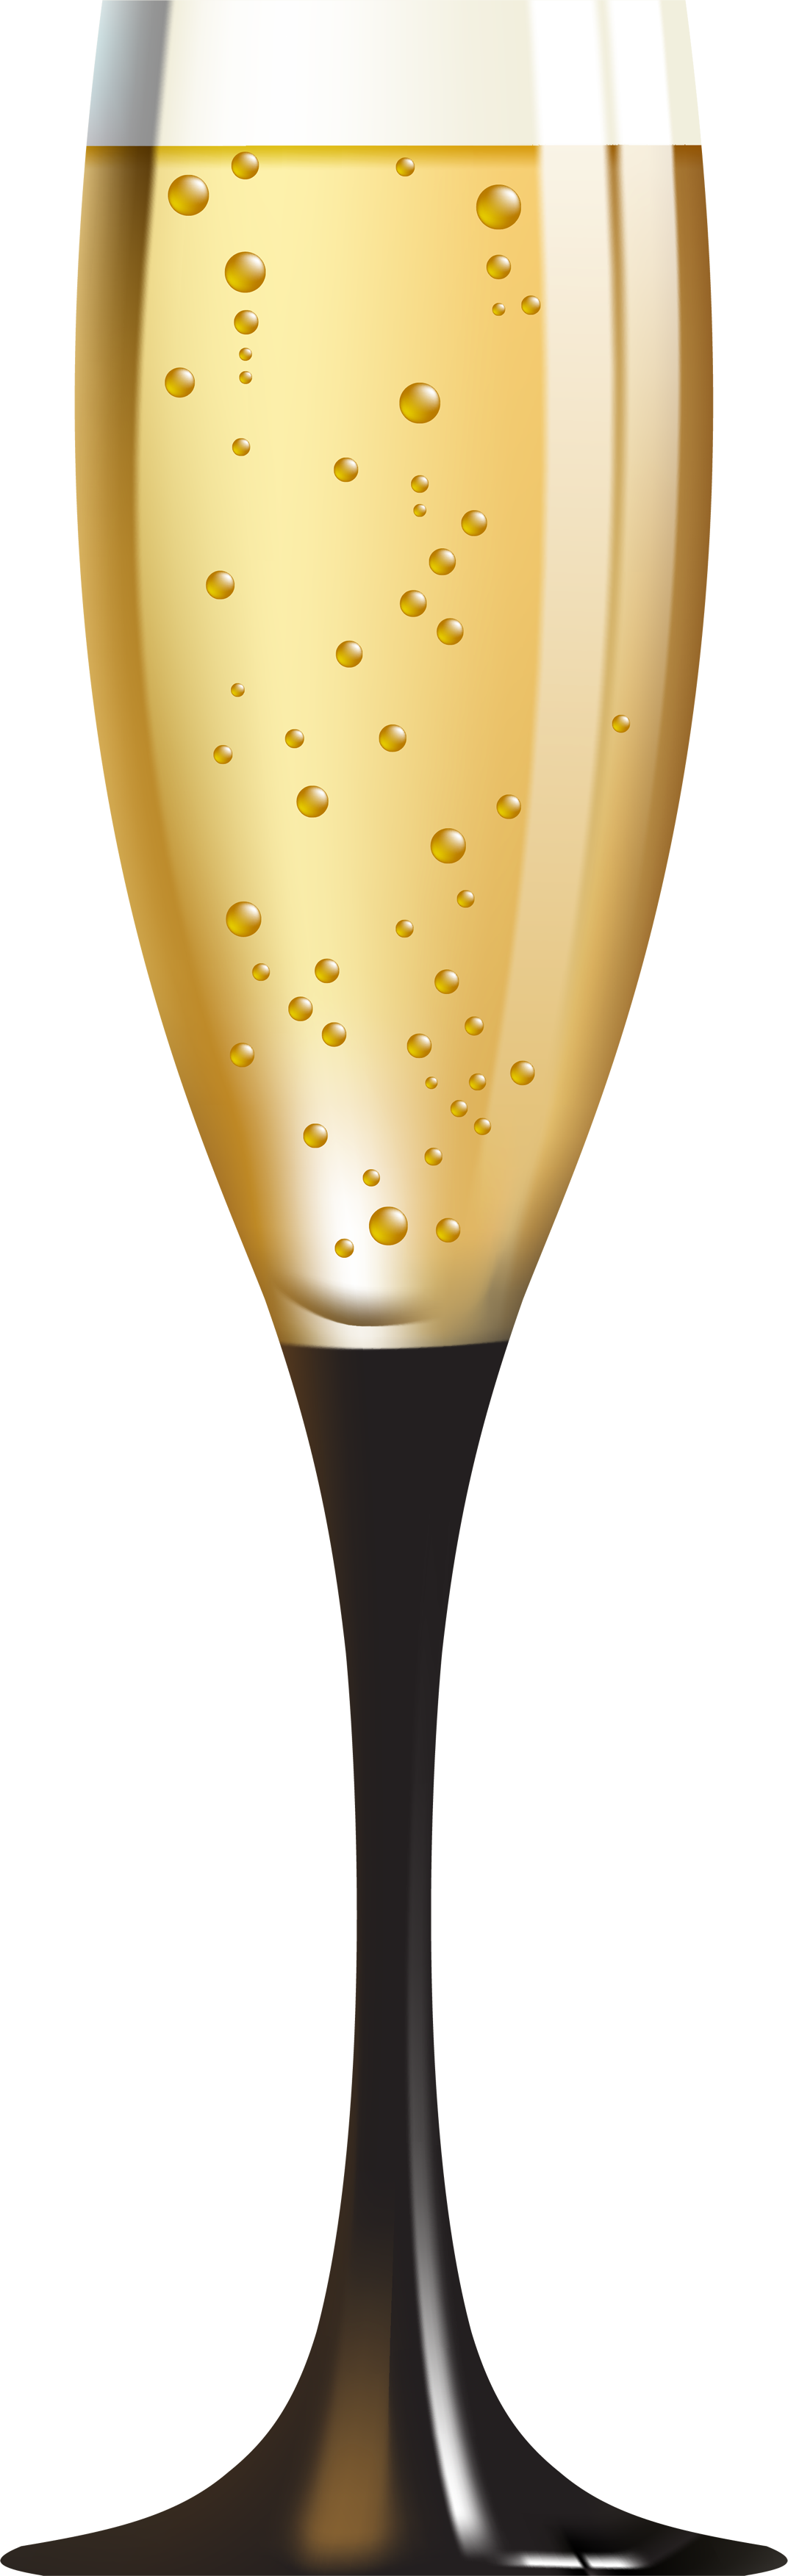 Champagne glass clipart png clipart free Champagne PNG images, Champagne bottle glass png clipart free